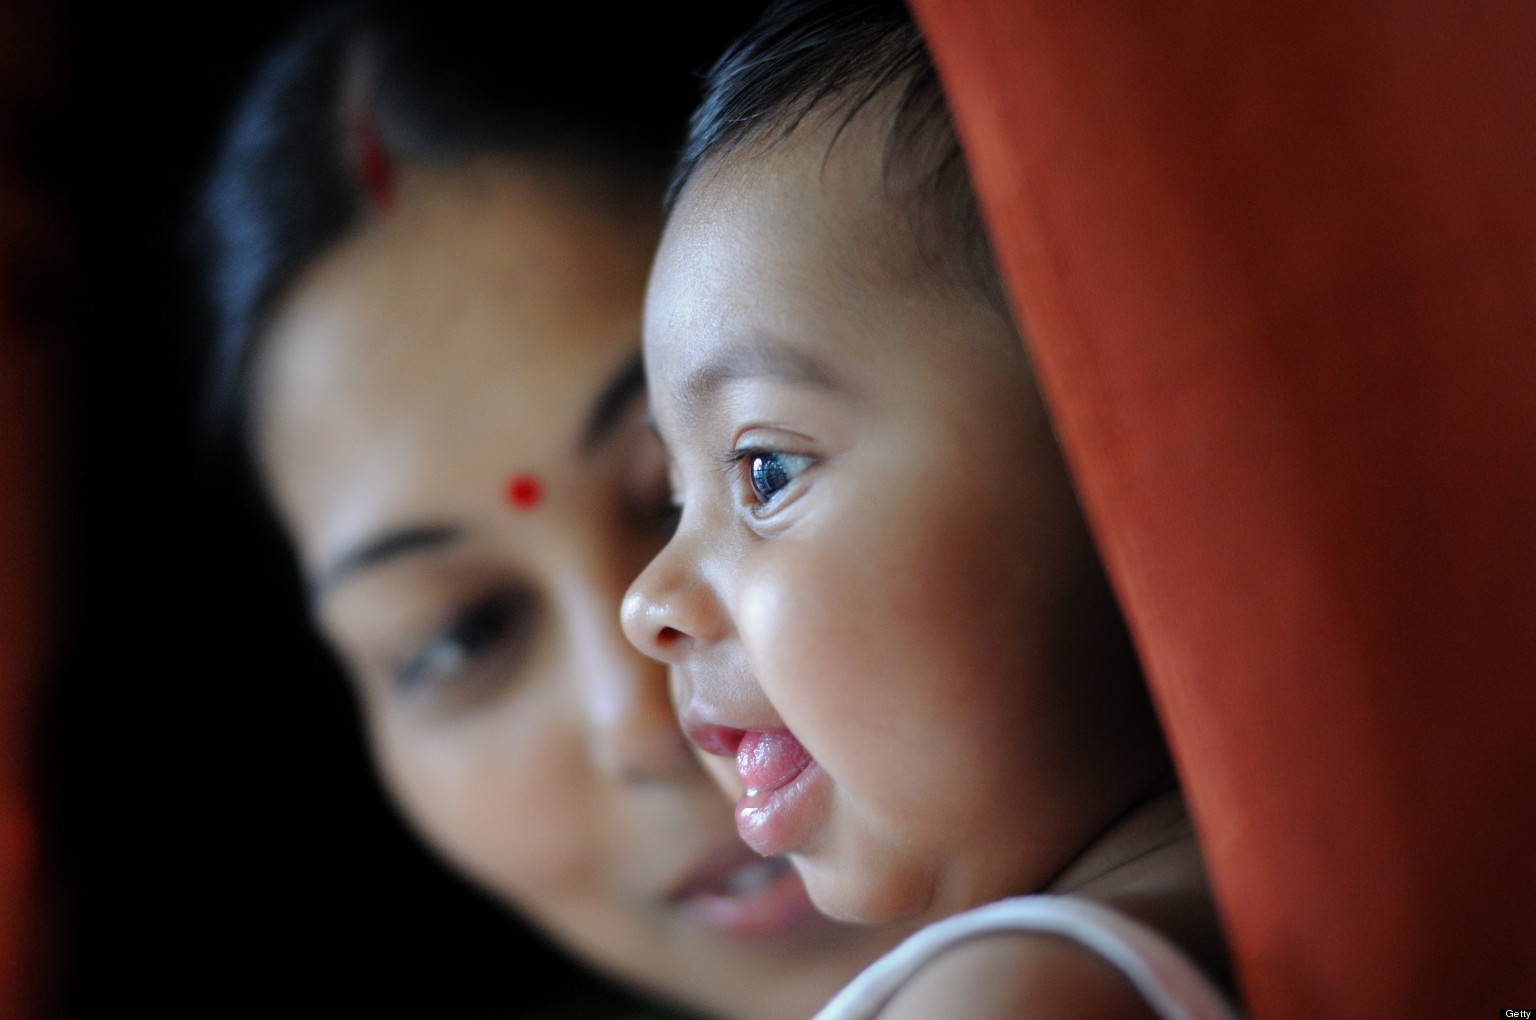 Mother's low weight linked to smaller children in India ...